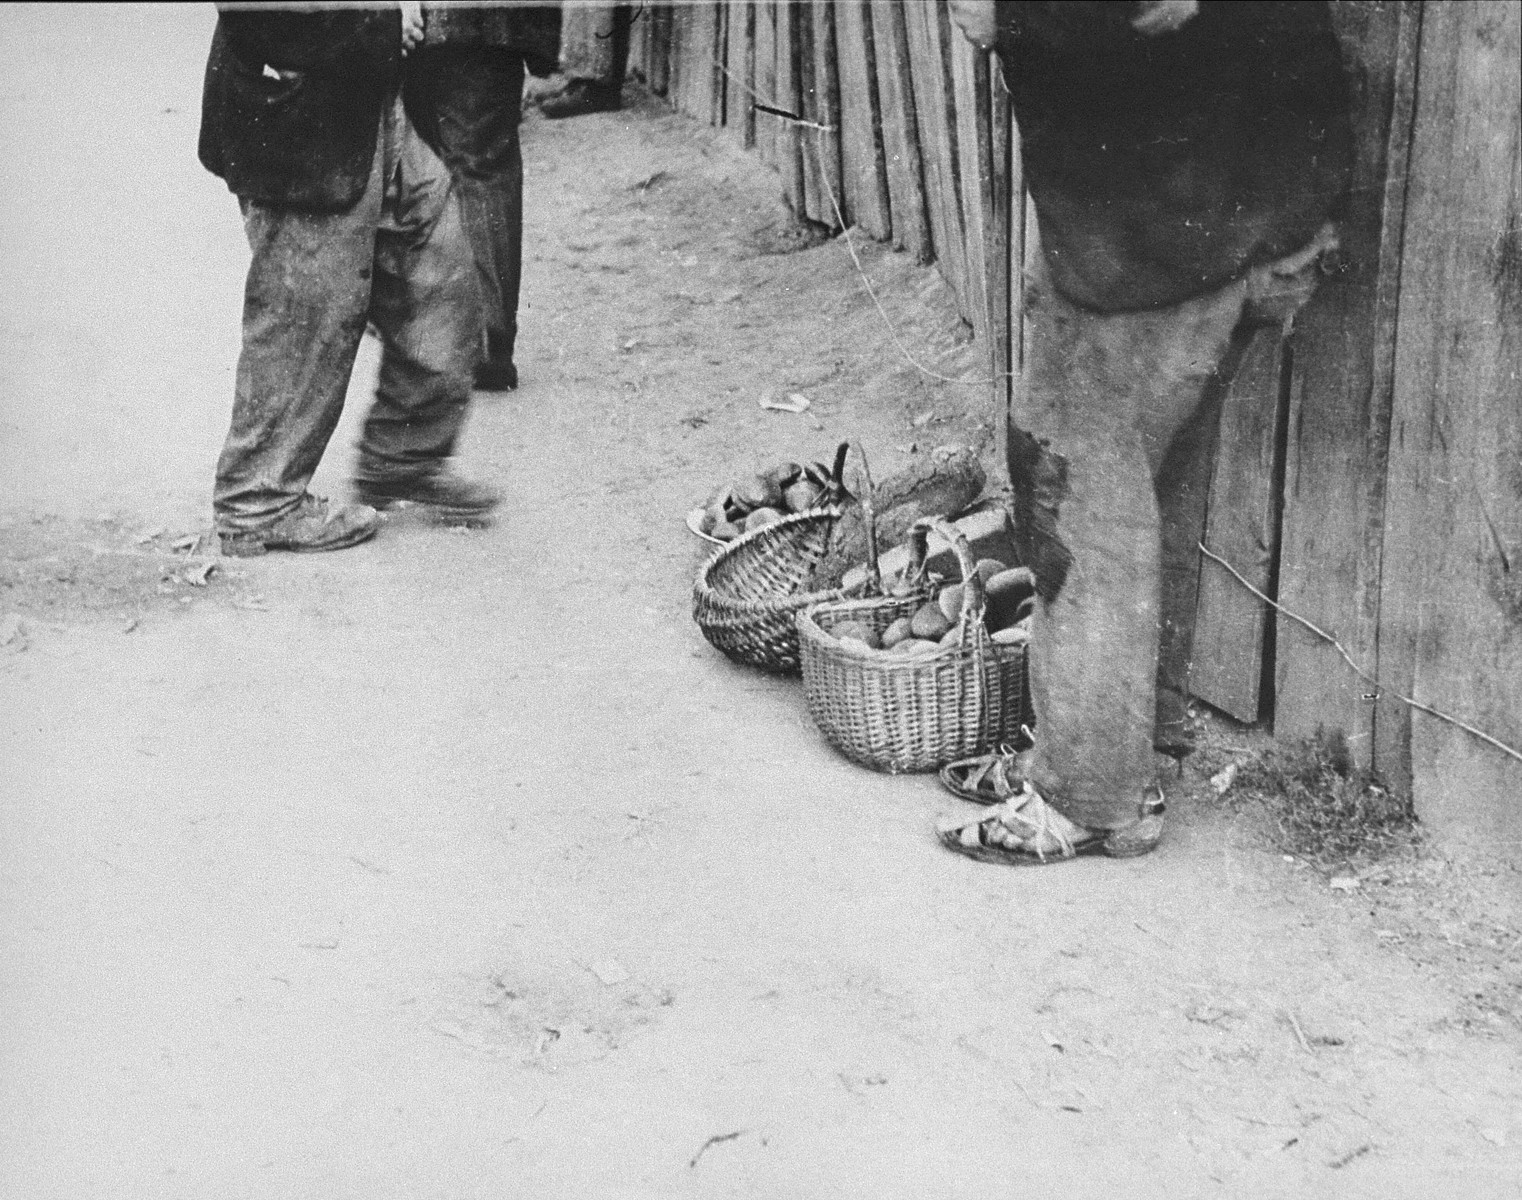 The feet of two men who are standing on a street in the Kovno Ghetto.  The man at the right stands beside baskets of bread wearing sandals held together by string.